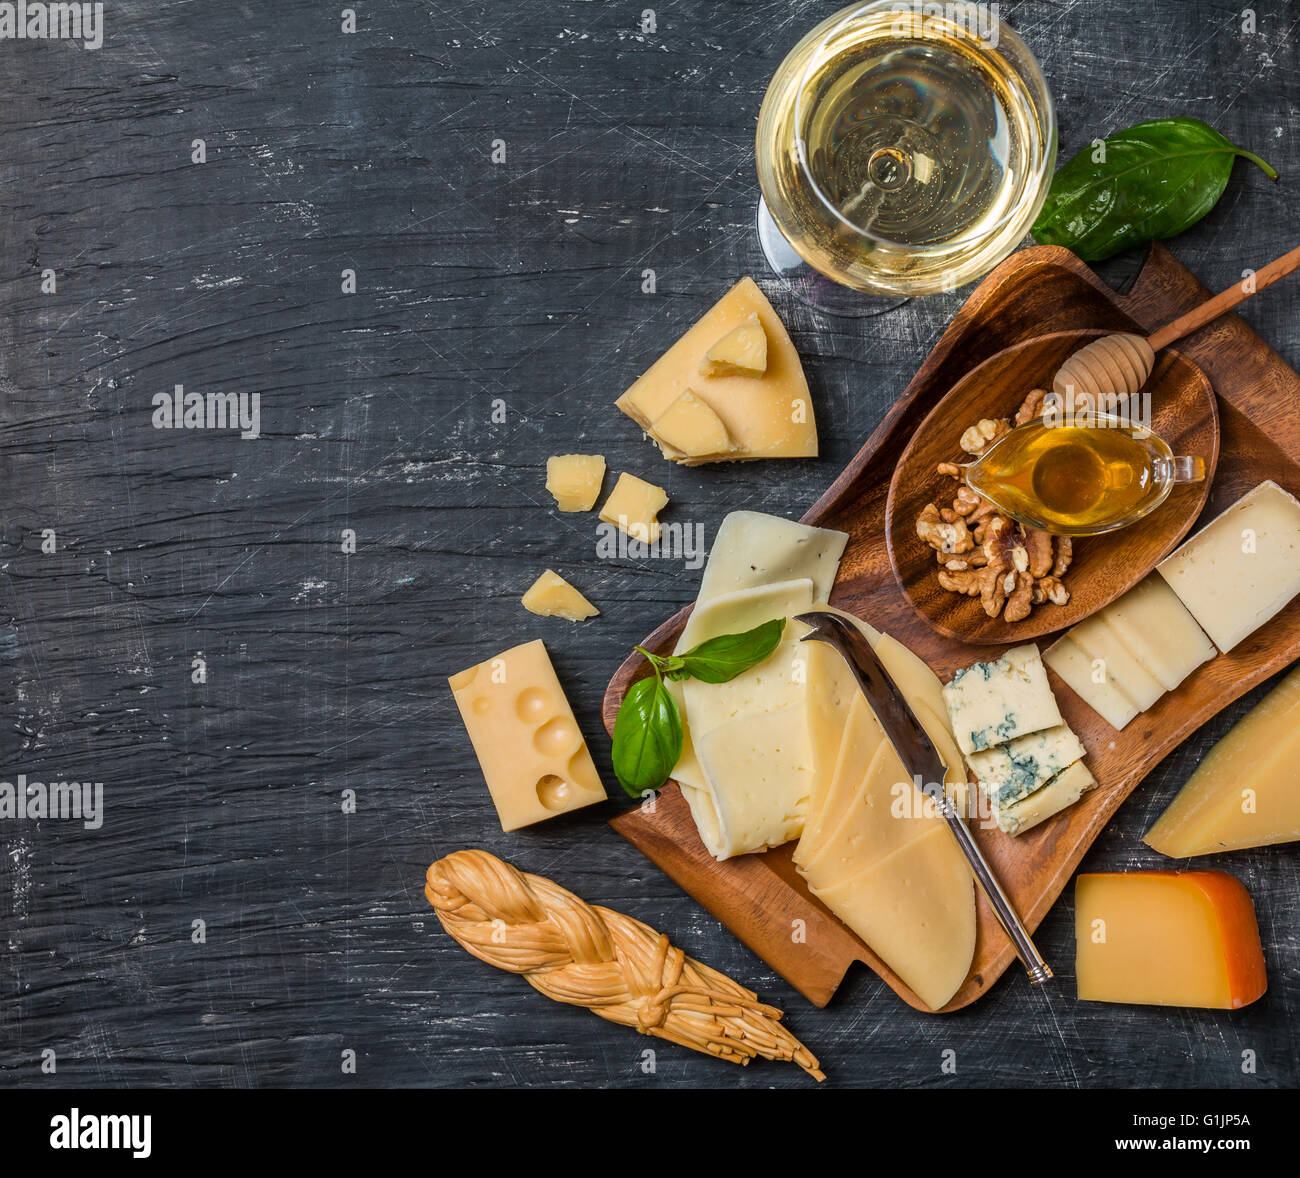 Various types of cheese - Stock Image